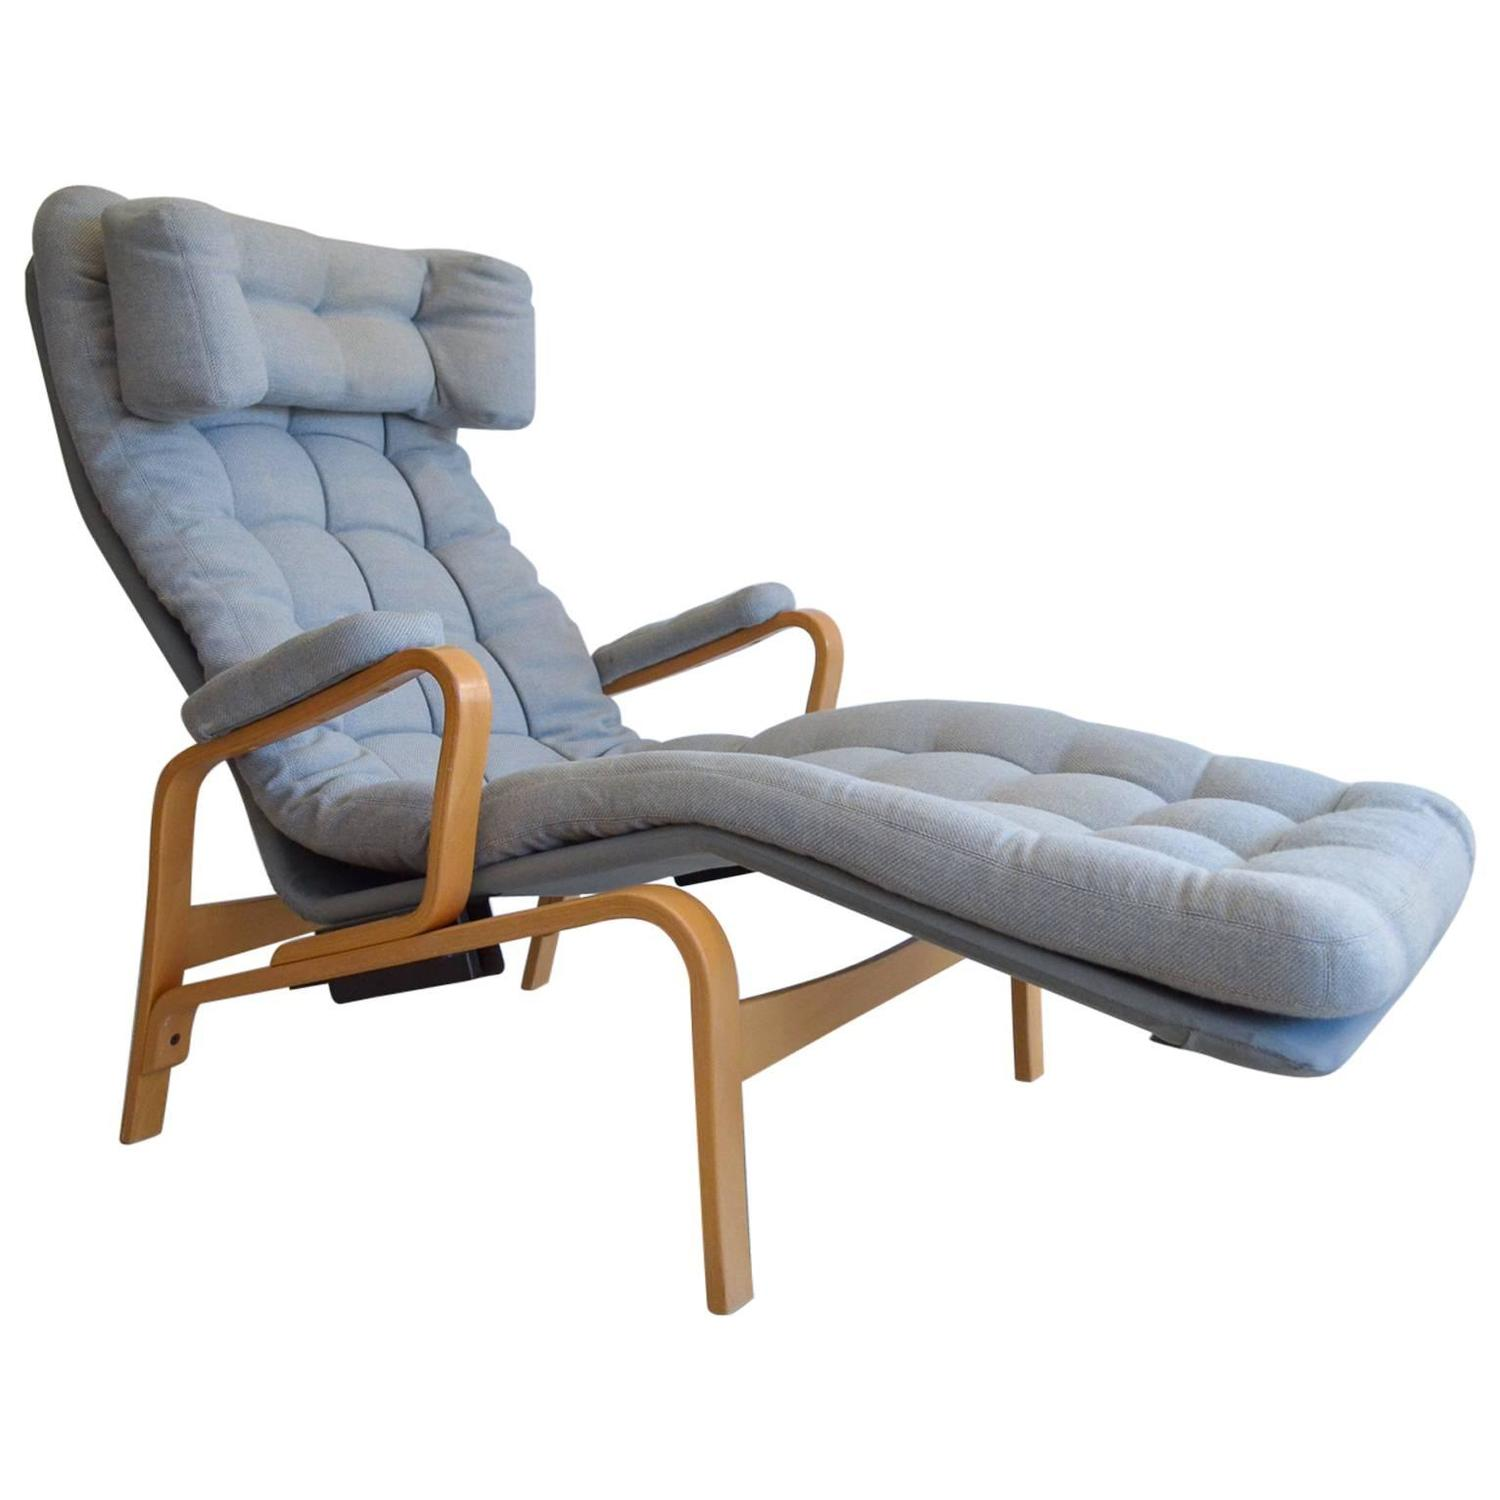 Sam Larsson for DUX Reclining Lounge Chair For Sale at 1stdibs